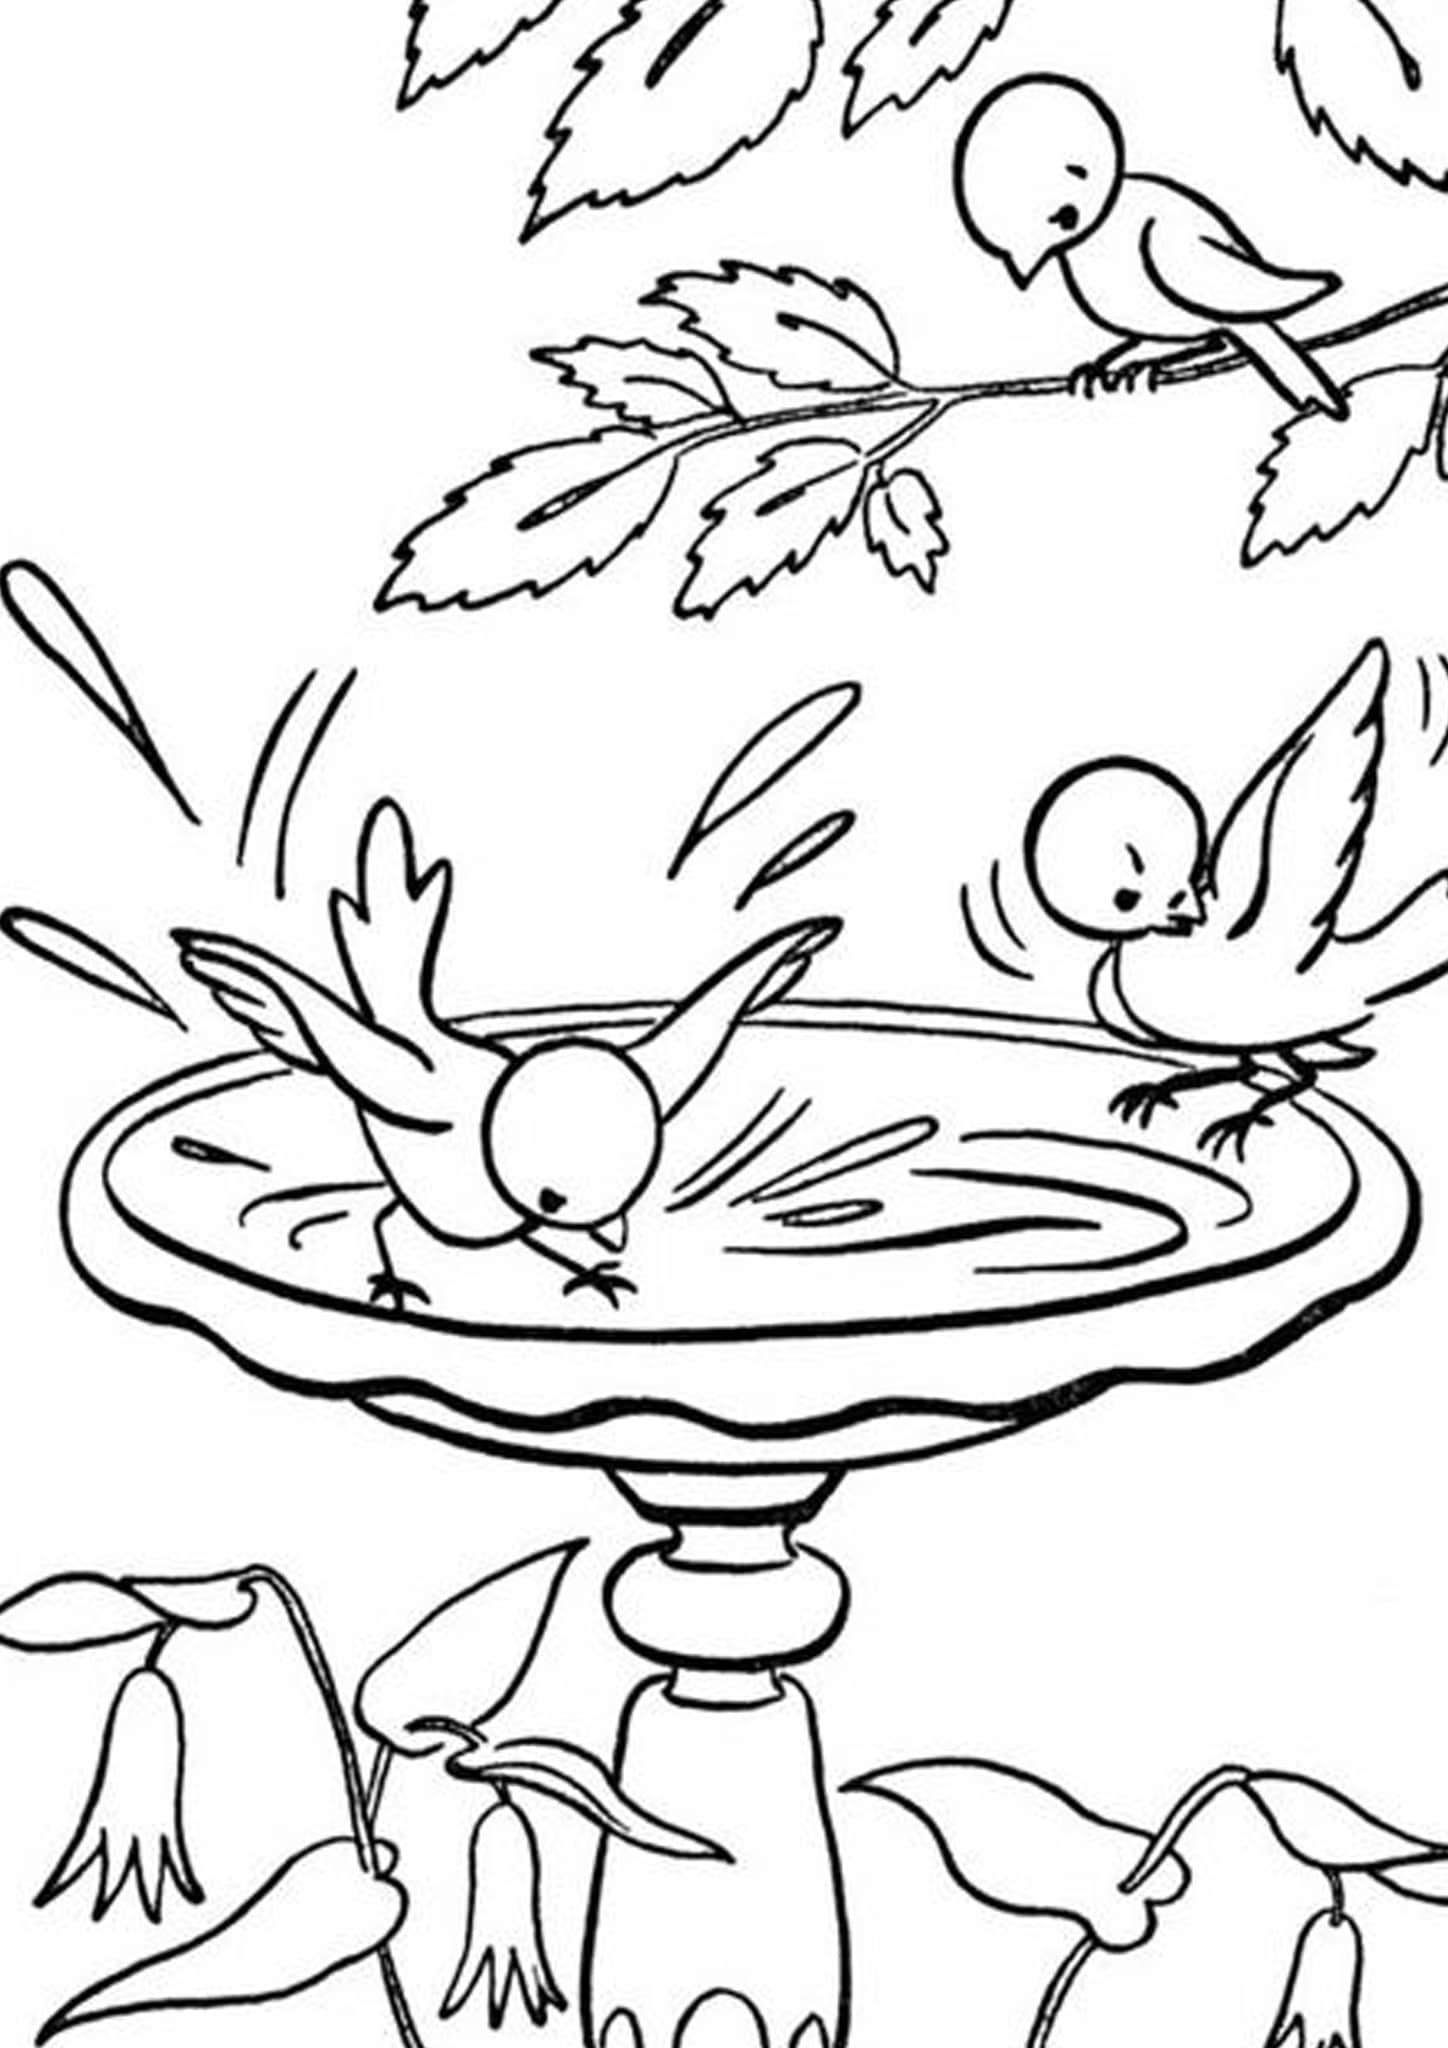 pictures of birds to color hummingbird coloring pages with images bird coloring of color pictures birds to